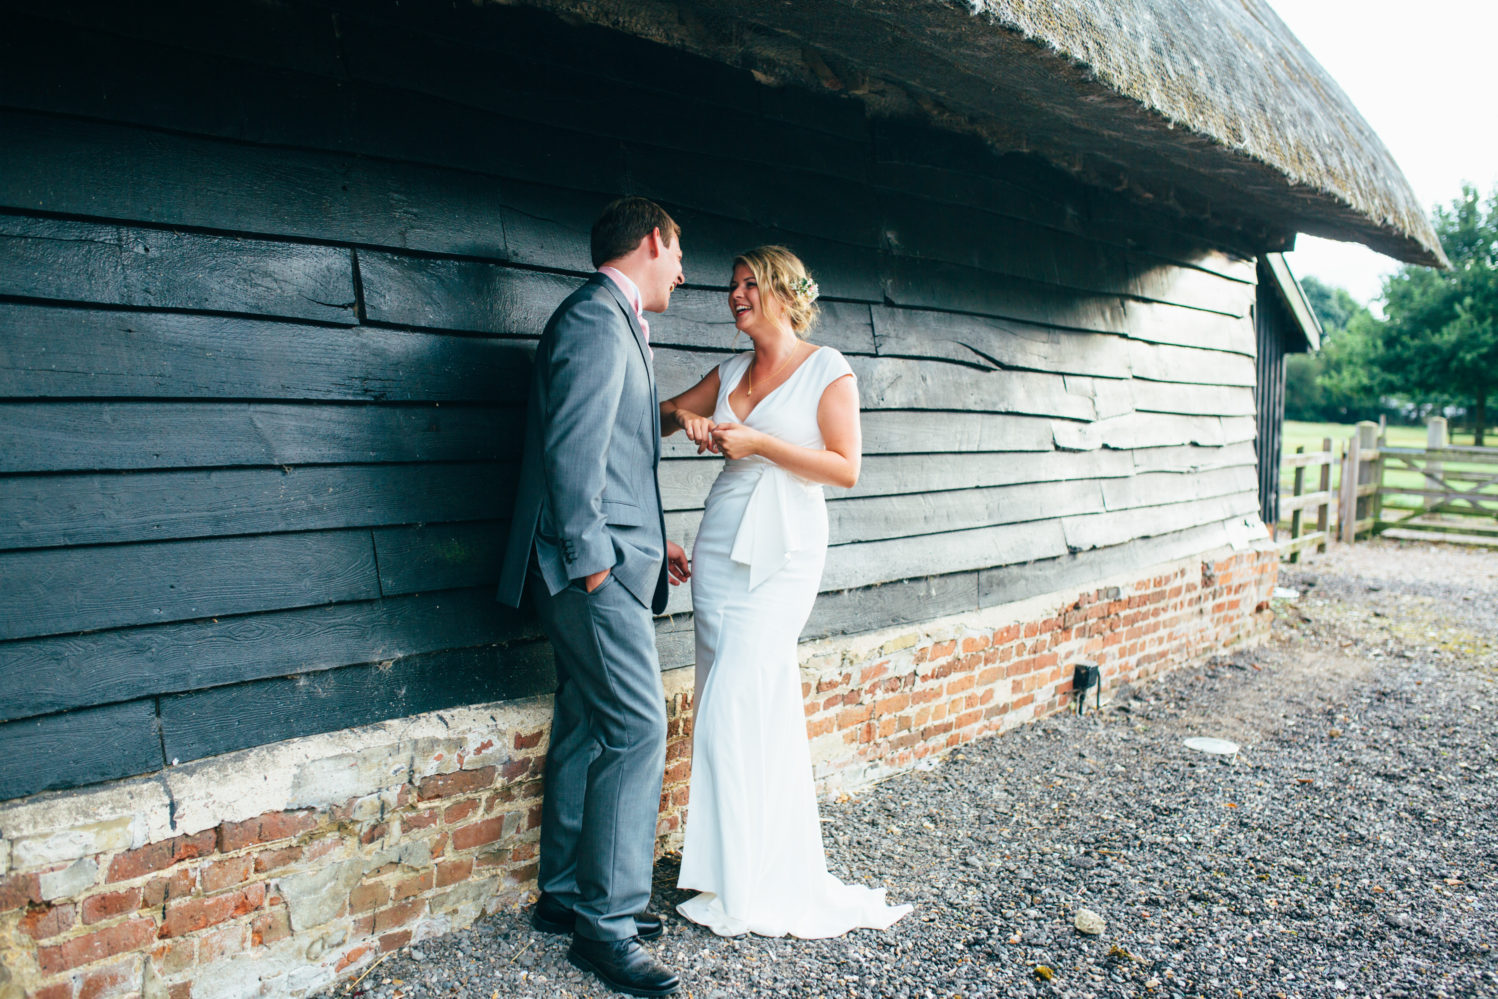 wedding photography at blackthorpe barn in suffolk